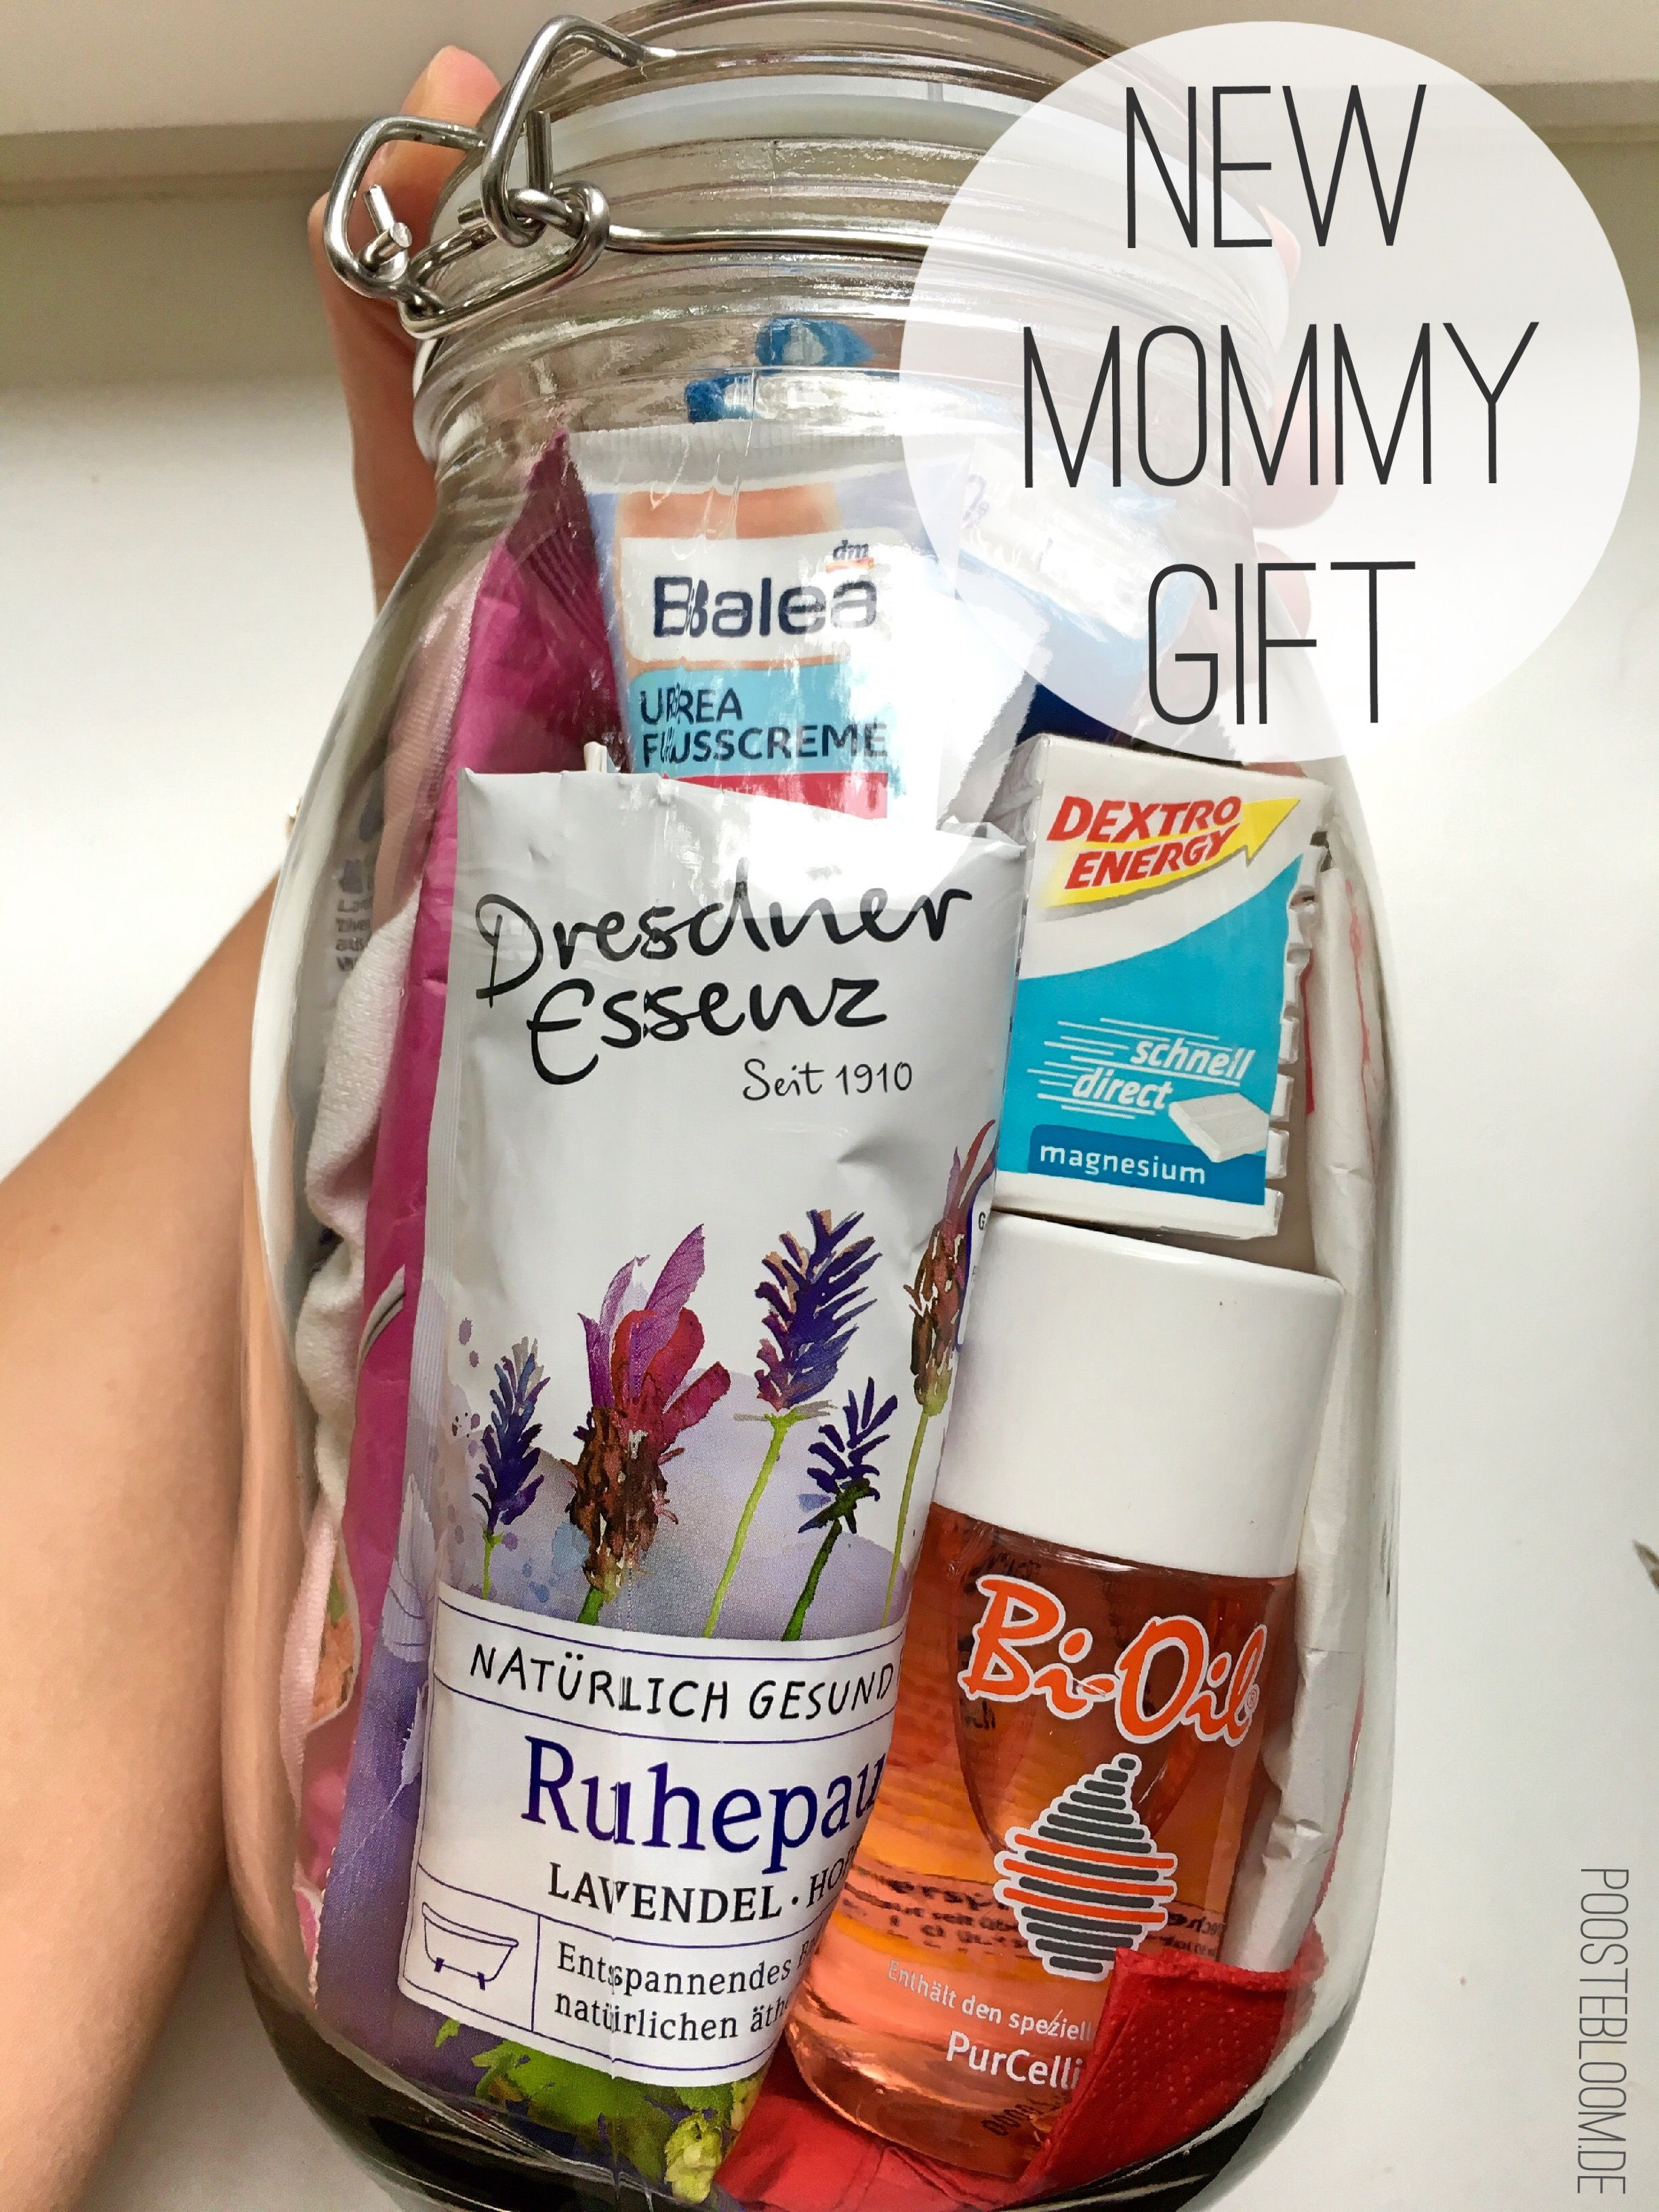 Diy Mothers Day Gifts From Baby Diy Für Frischgebackene Mütter New Moms Gift In A Jar